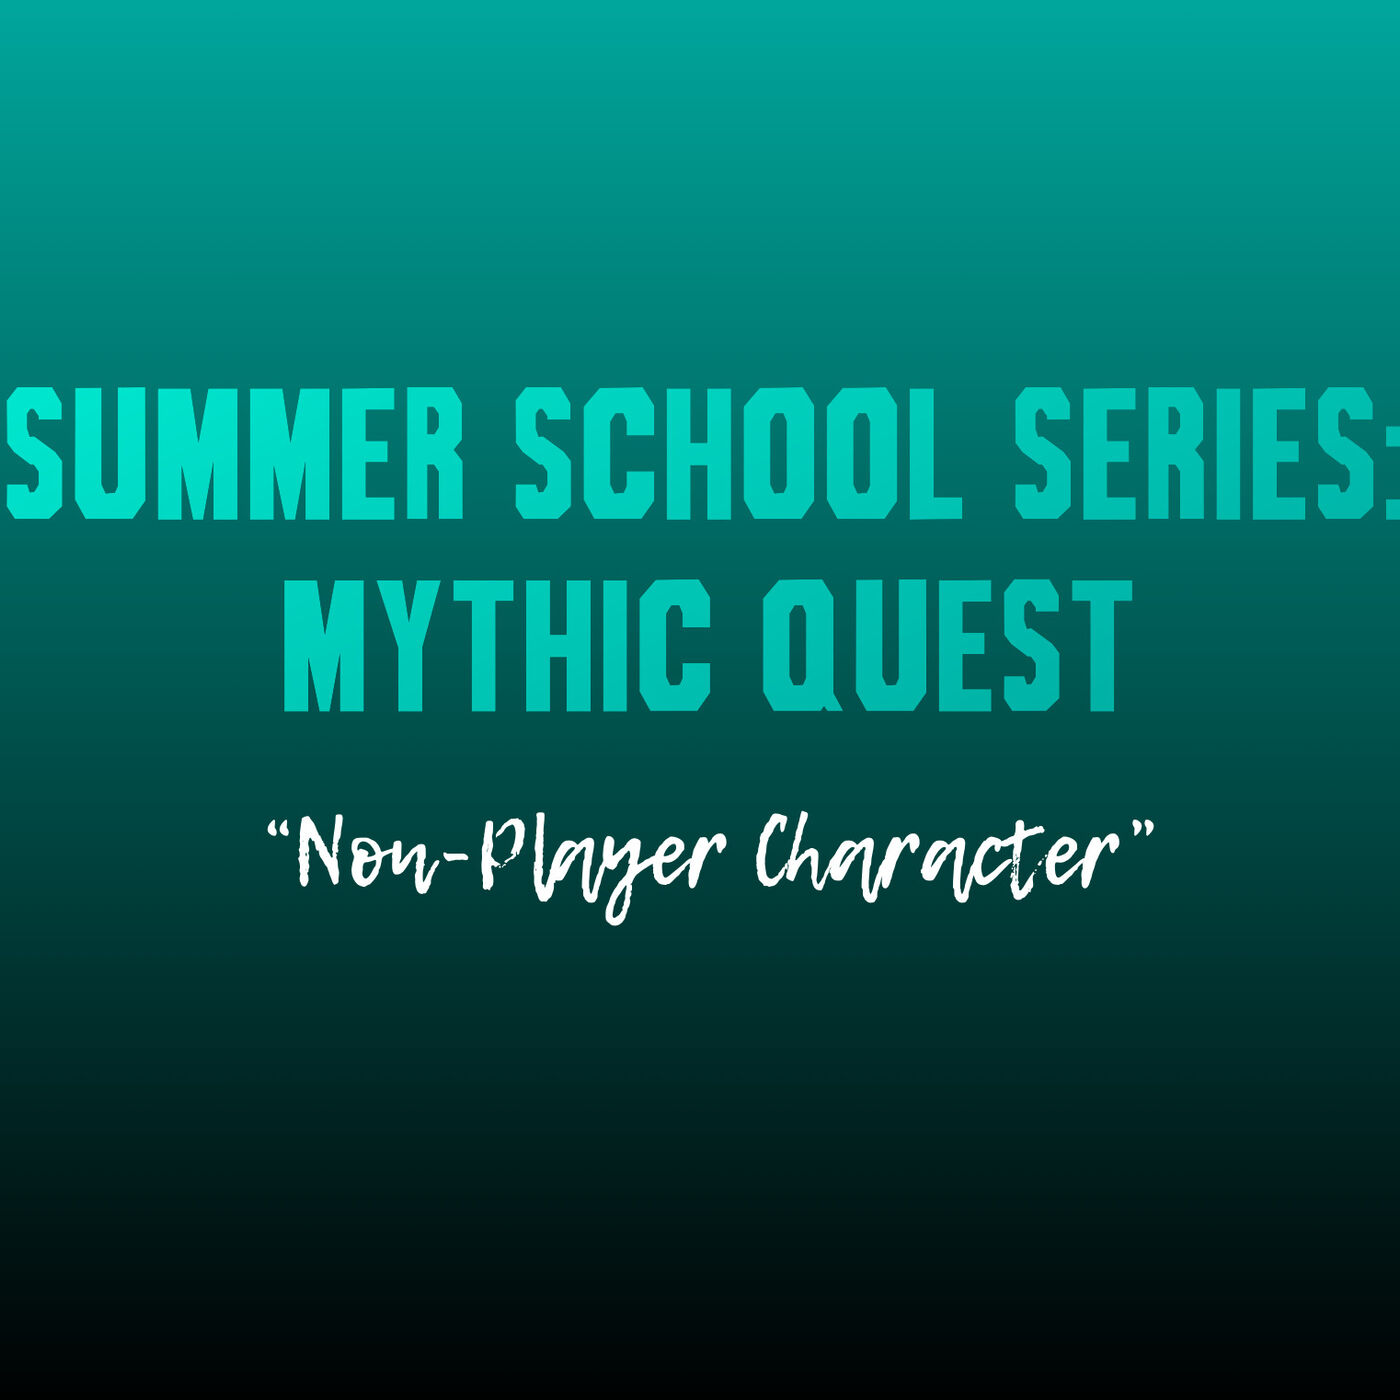 """Summer School Series: Mythic Quest (""""Non-Player Character"""")"""